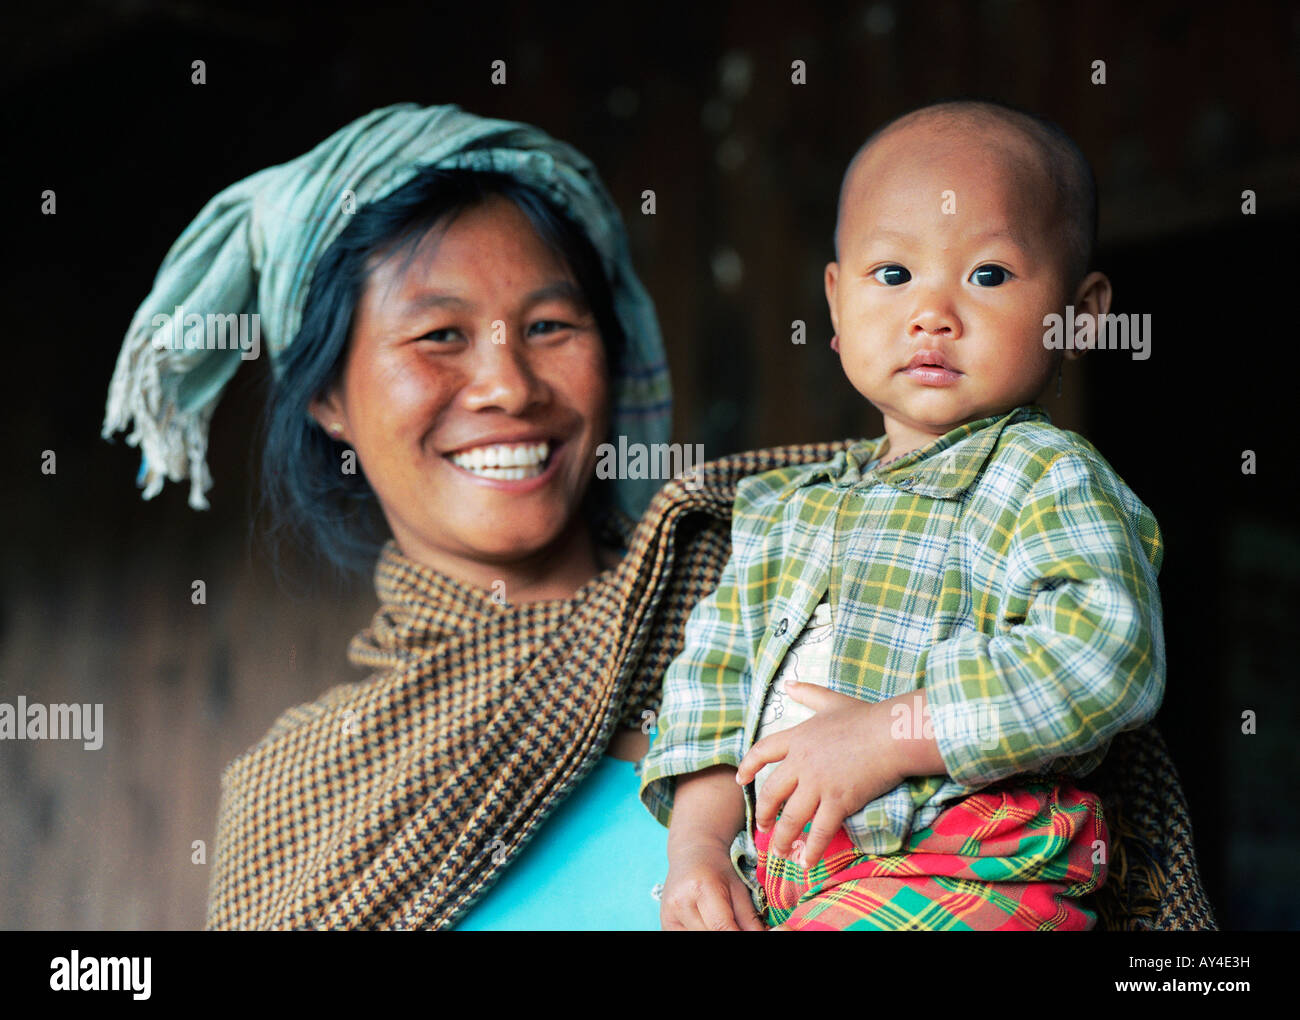 A woman of the Danu tribe is holding her baby on her arms - Stock Image